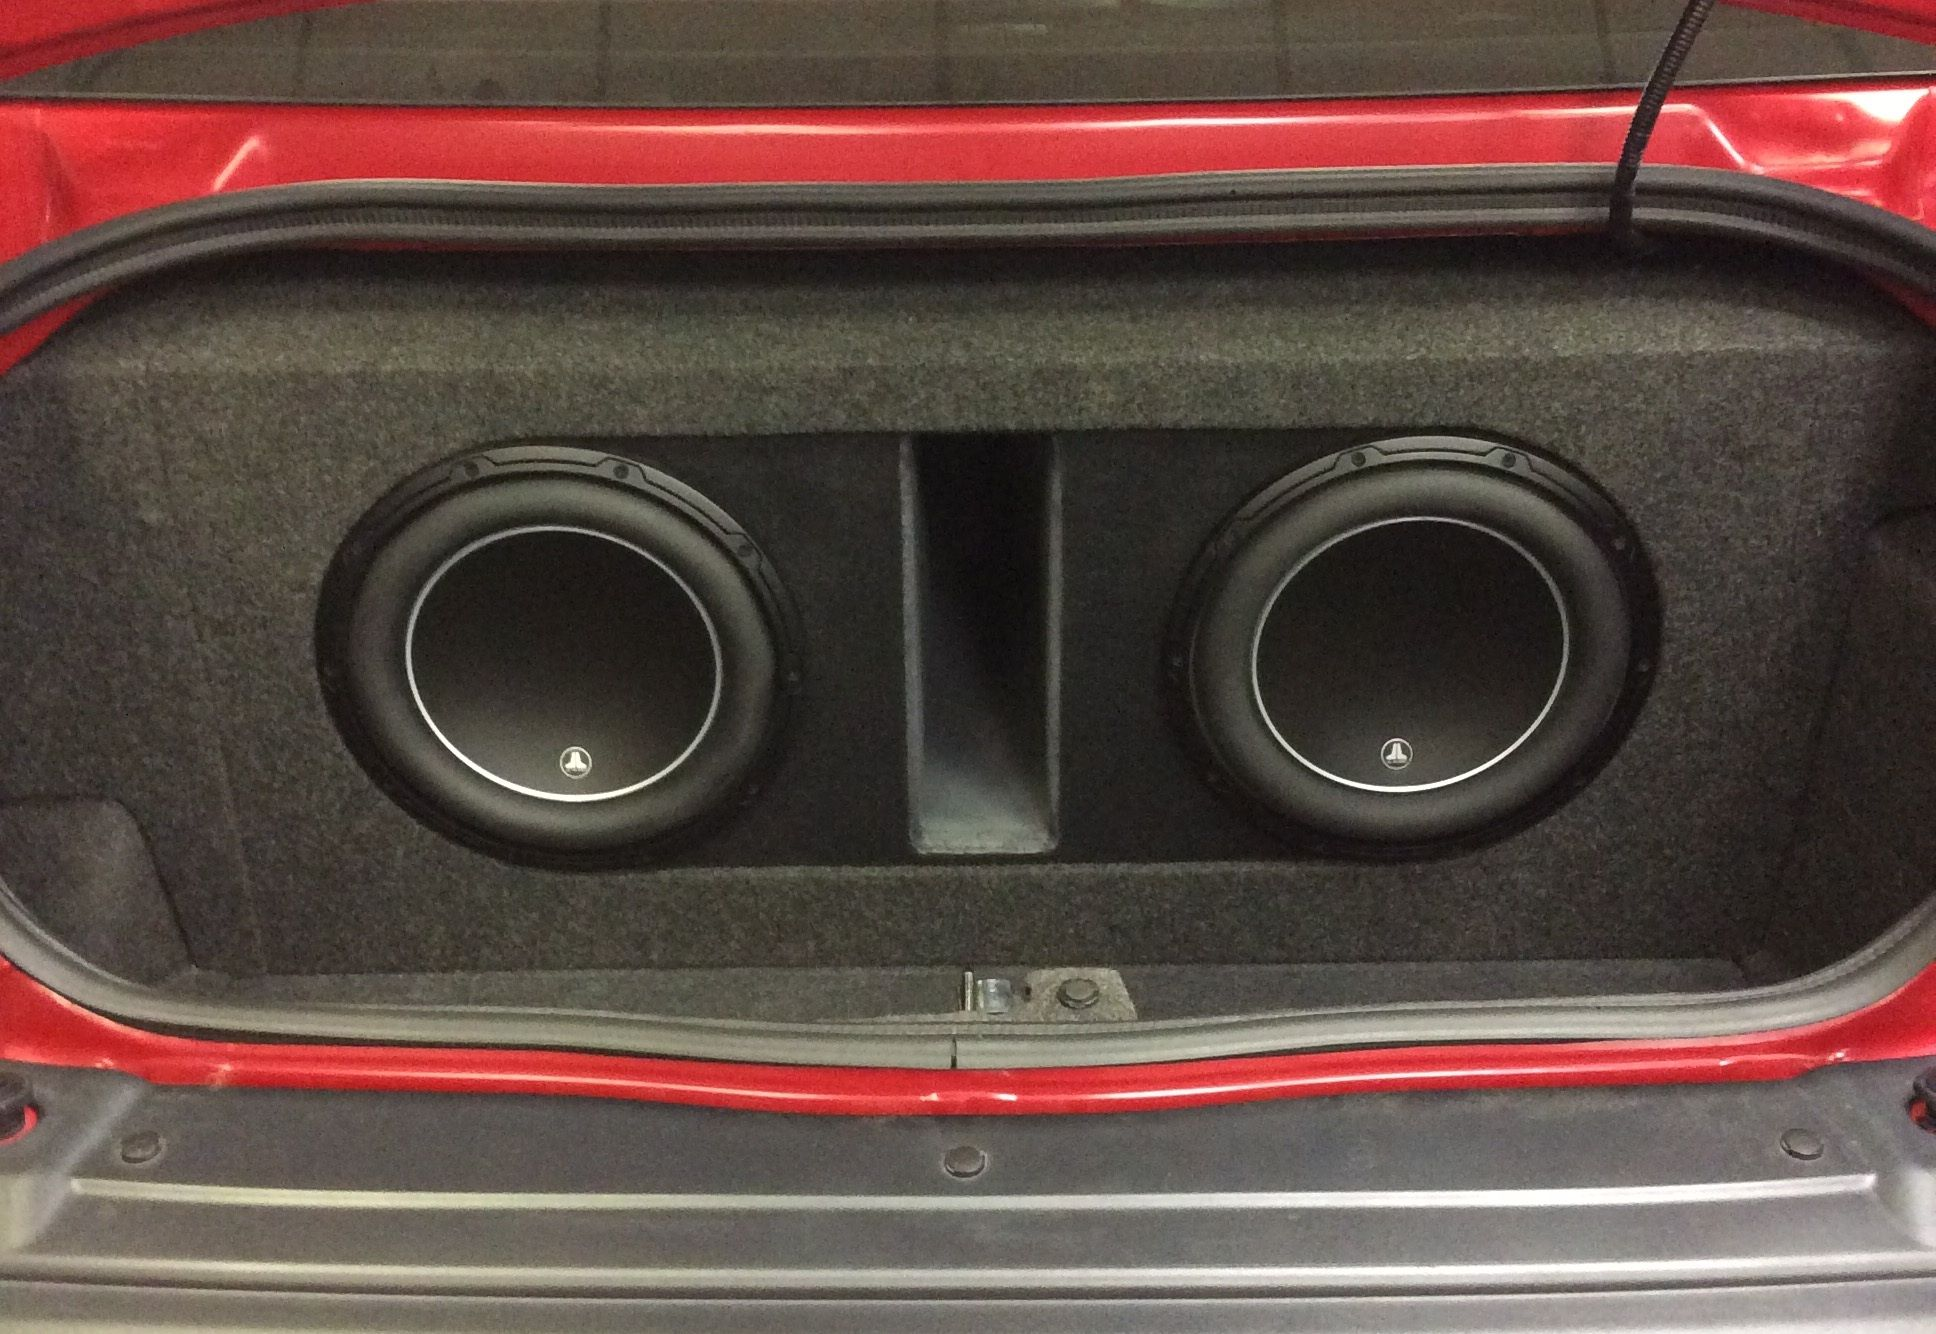 Massive Bass Comes From A Pair Of 12 Inch Jl Audio W6 Subwoofers Will Consistent Power To Both Maximizing Your Mounted In